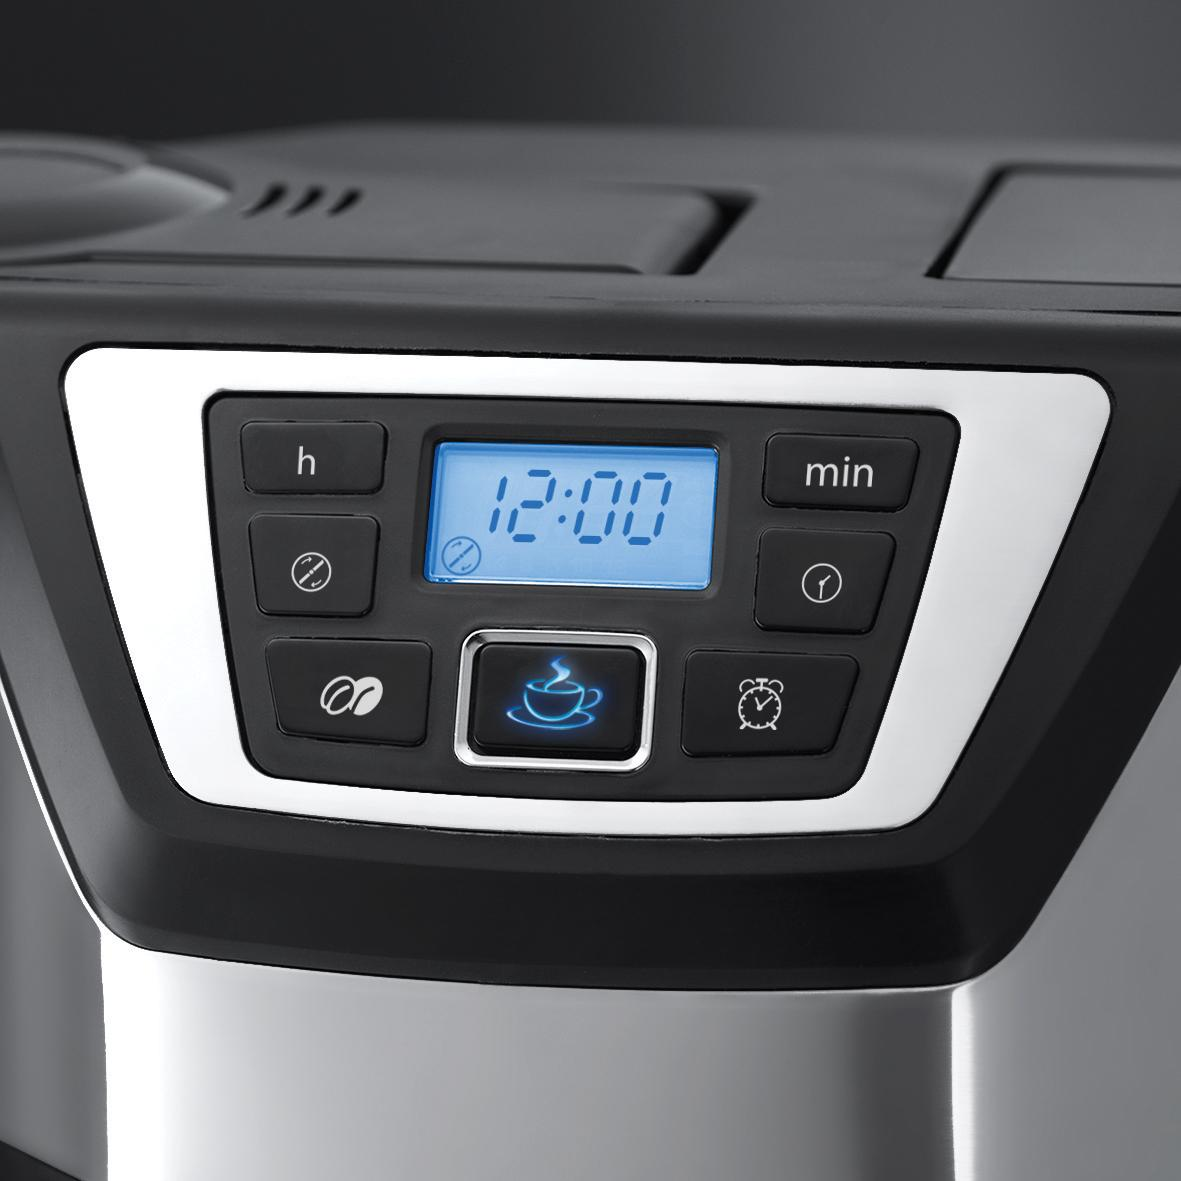 Russell Hobbs Bean To Cup Coffee Maker : Russell Hobbs 22000 Chester Grind and Brew Coffee Maker Stainless Steel Black